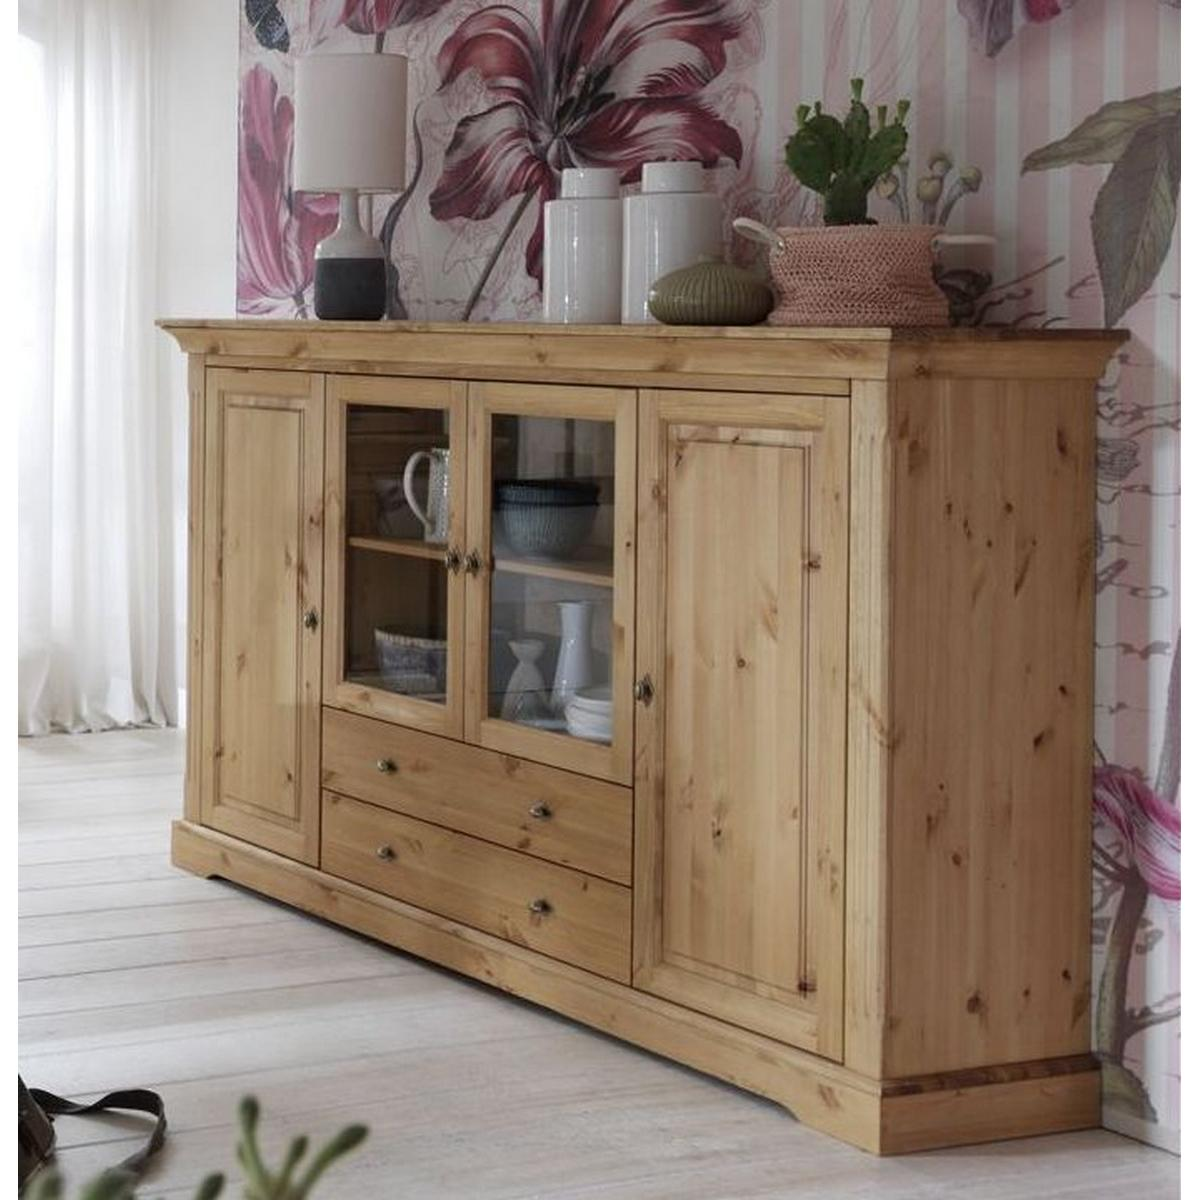 steens 20222530 sideboard max 93 x 120 x 40 cm kiefer massiv gelaugt ge lt smash. Black Bedroom Furniture Sets. Home Design Ideas